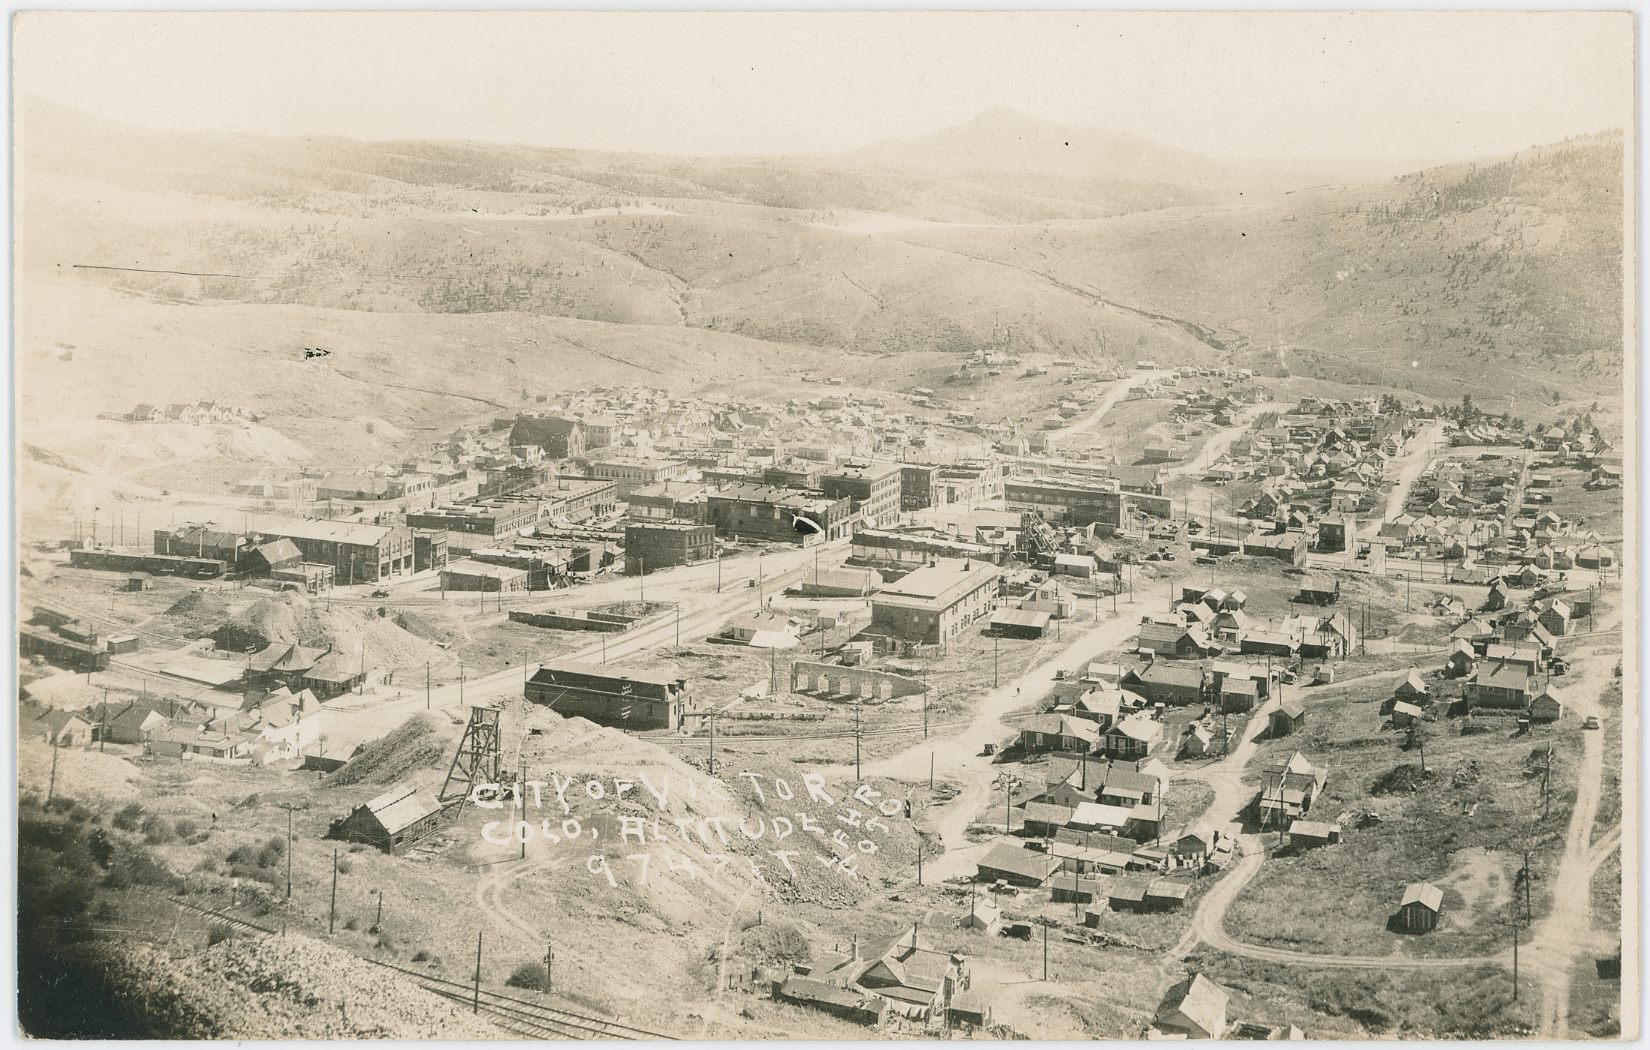 This view of Victor from Battle Mountain up near the Ajax mine is possible from the 1930's, I am not sure, as there are no dates to go from. The postcard has a EKC stamp box on the backside, and Google gives info that this is from the 1939-1950 timespan, so late 1930's might be a safe bet. There are still rails seen, with railroad cars, so I would guess the M.T. is still running, making this also fit the late 1930's and very early 1940's timeframe. In foreground towards lower left is the head frame and hoist house of the Oliver Shaft of the Dead Pine mine seen, with its big dump stretching out towards the town and the rails of the M.T., which depot can be seen left of the head frame. An exposed more modern version of the Gold Coin head frame can be seen about middle top/down and about 1/3 in from the right-hand side of the card, with the ruins of the brick walls seen around it, check out the image in the Gold Coin base image view, as number 7. In a sort of continued line from the head frame of the Dead Pine through the Gold Coin, one can see the dump area of the St. Patrick mine about 2/7 in from right-hand side and about 2/5 from top. Best seen as a cropped version of a higher resolution scan of this card, check out view 7 in the St. Patrick Base page image view.